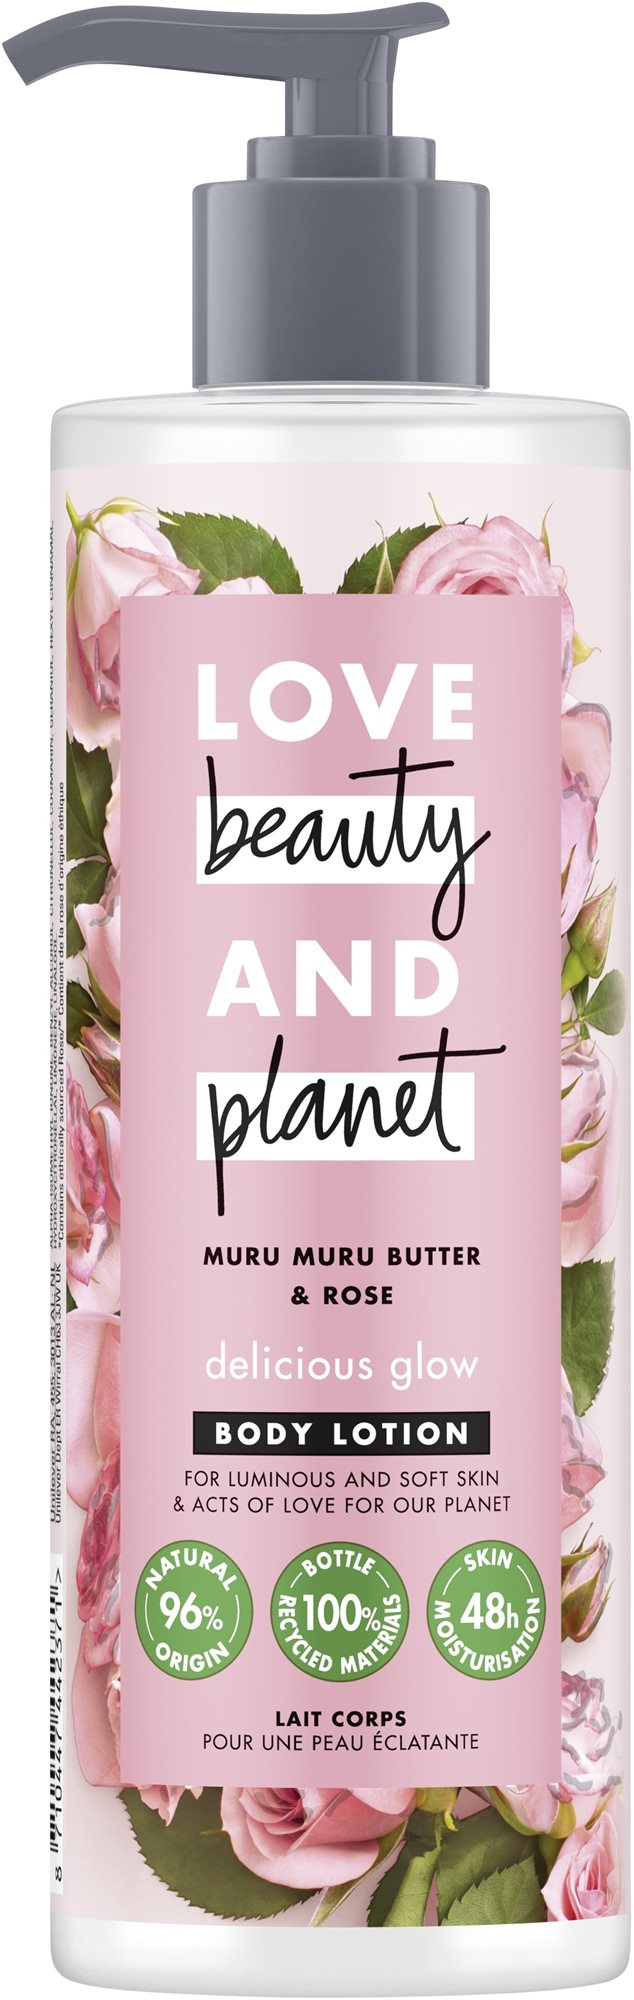 LOVE BEAUTY AND PLANET Delicious Glow Body Lotion 400 ml